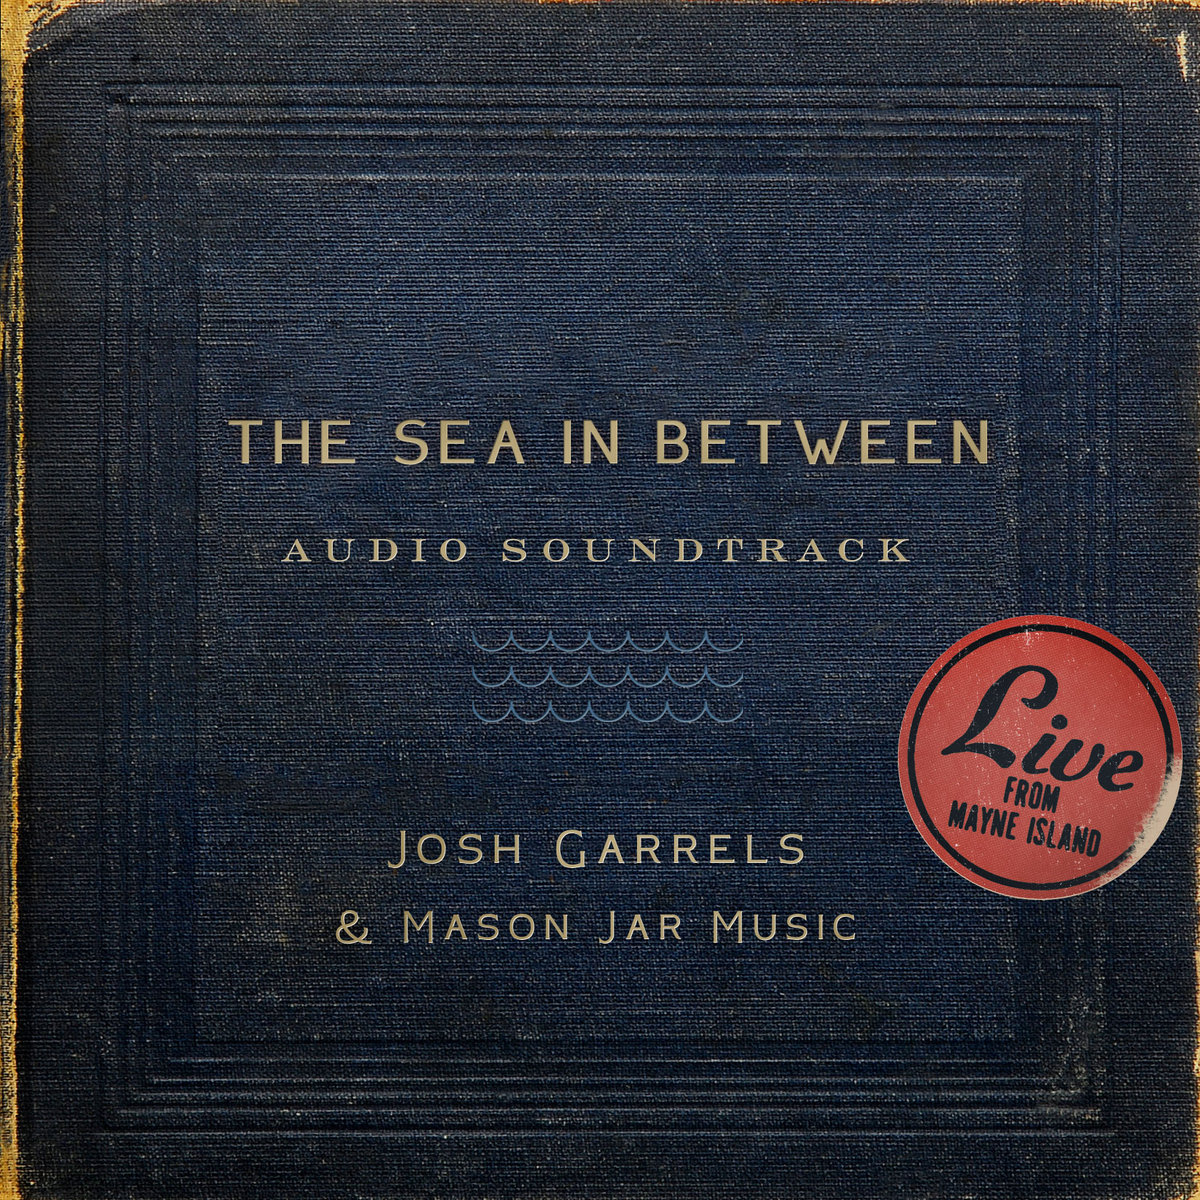 The Sea In Between Soundtrack | Josh Garrels